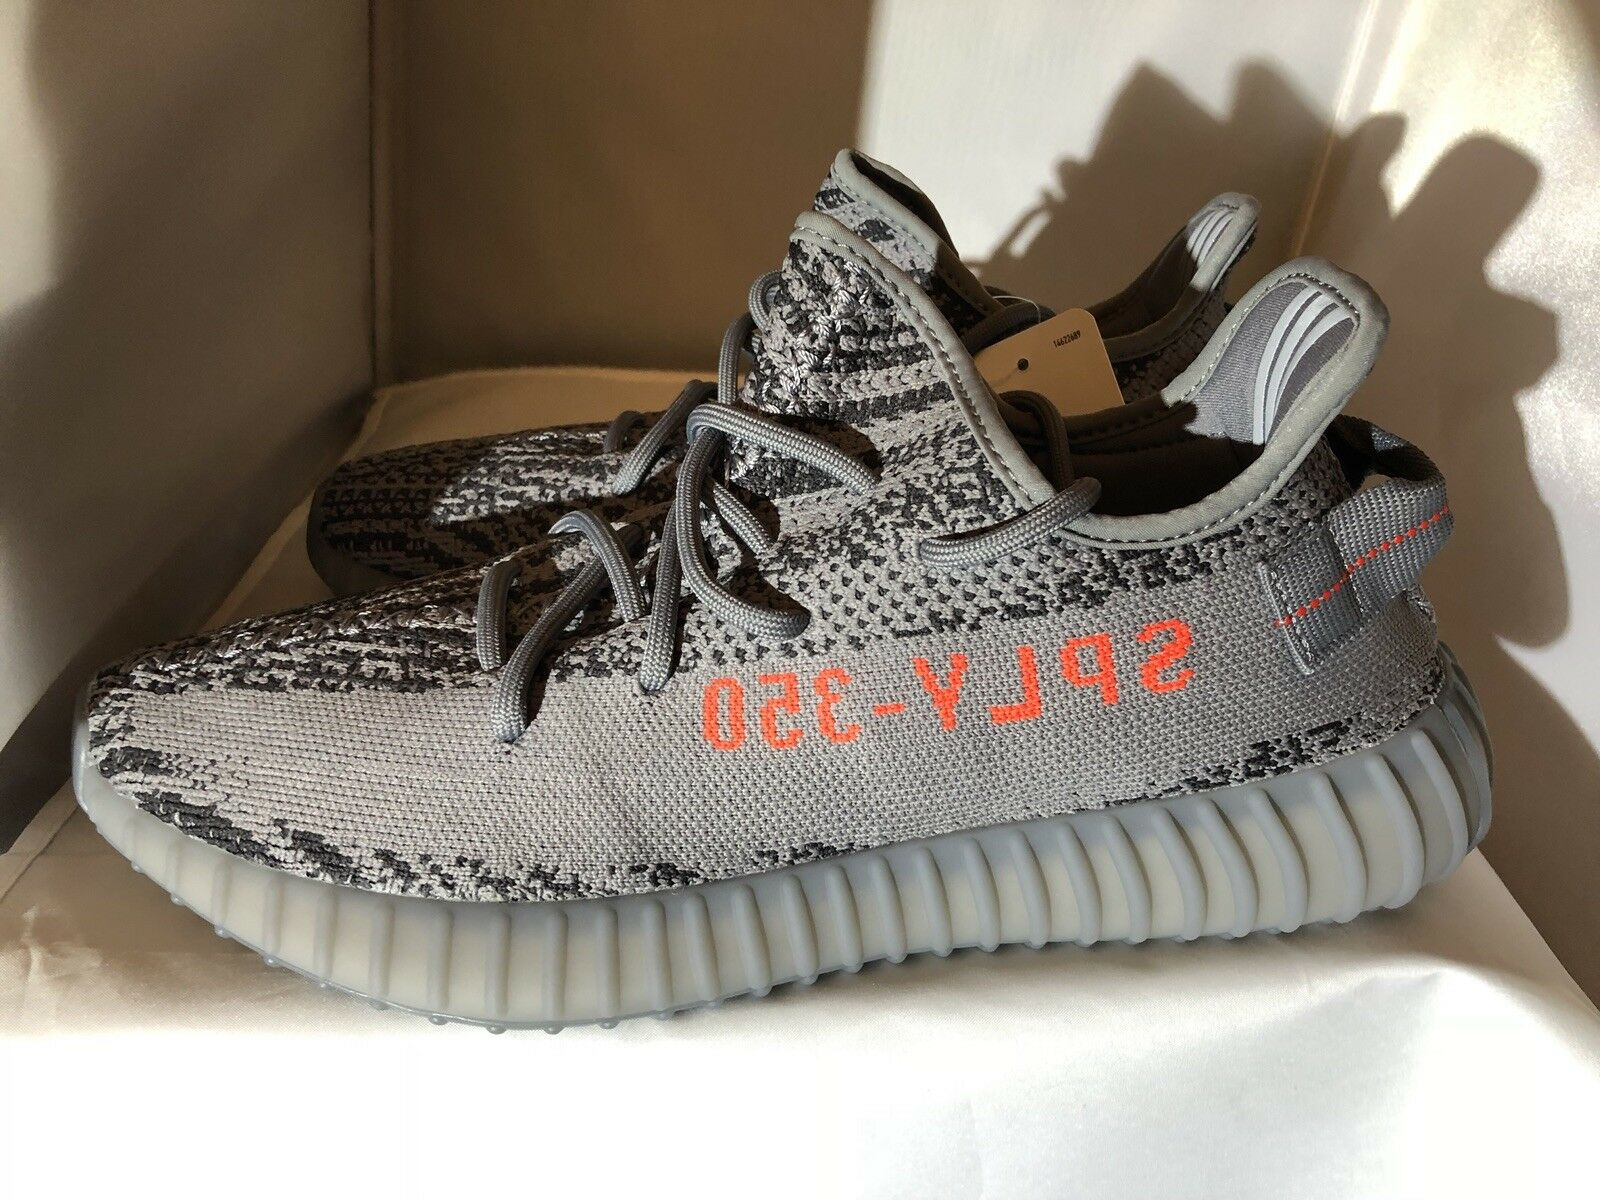 Adidas Yeezy Boost 350 DS Beluga 2.0 AH2203 Size 10 Grey orange. 100% Authentic.